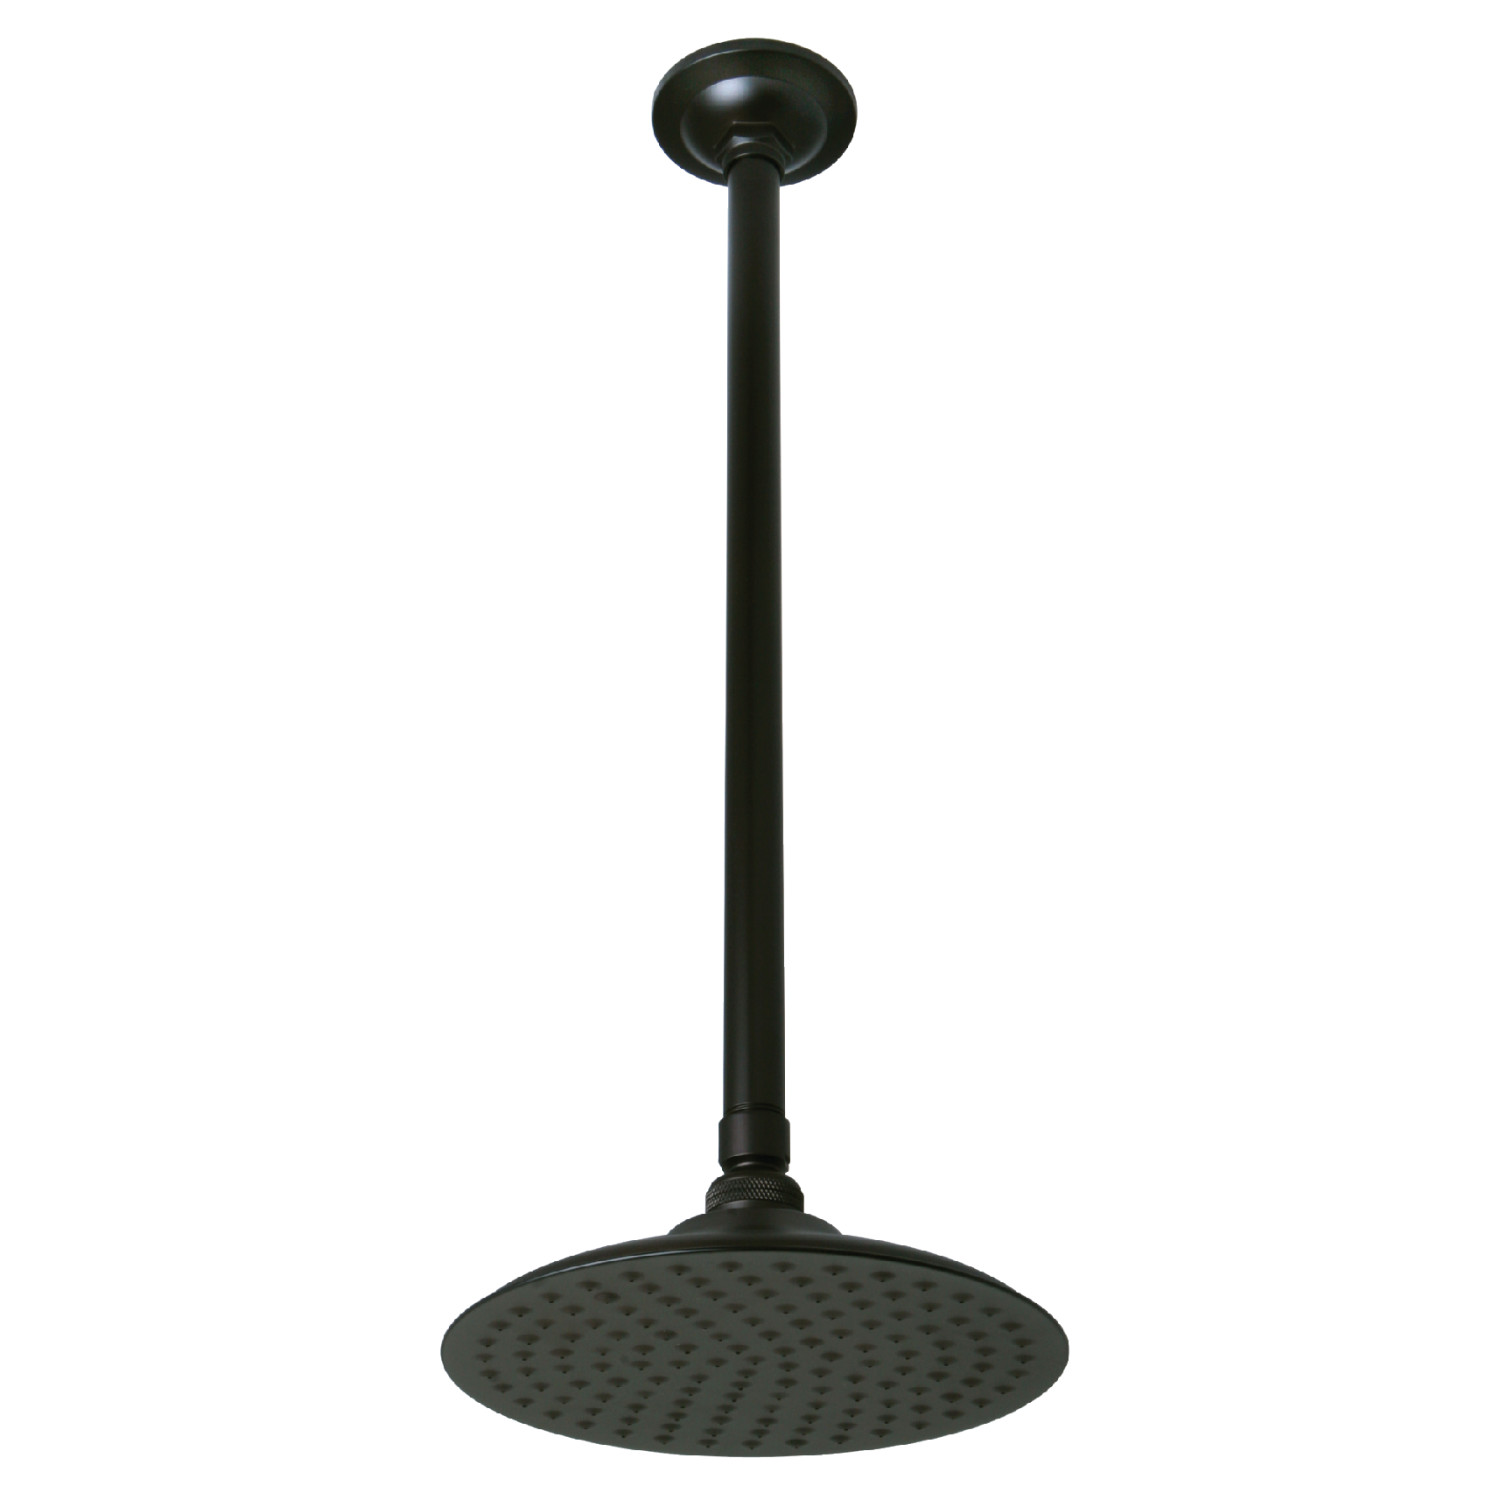 Elements Of Design Dk236k25 Shower Head With 17 Inch Ceiling Mounted Shower Arm Oil Rubbed Bronze